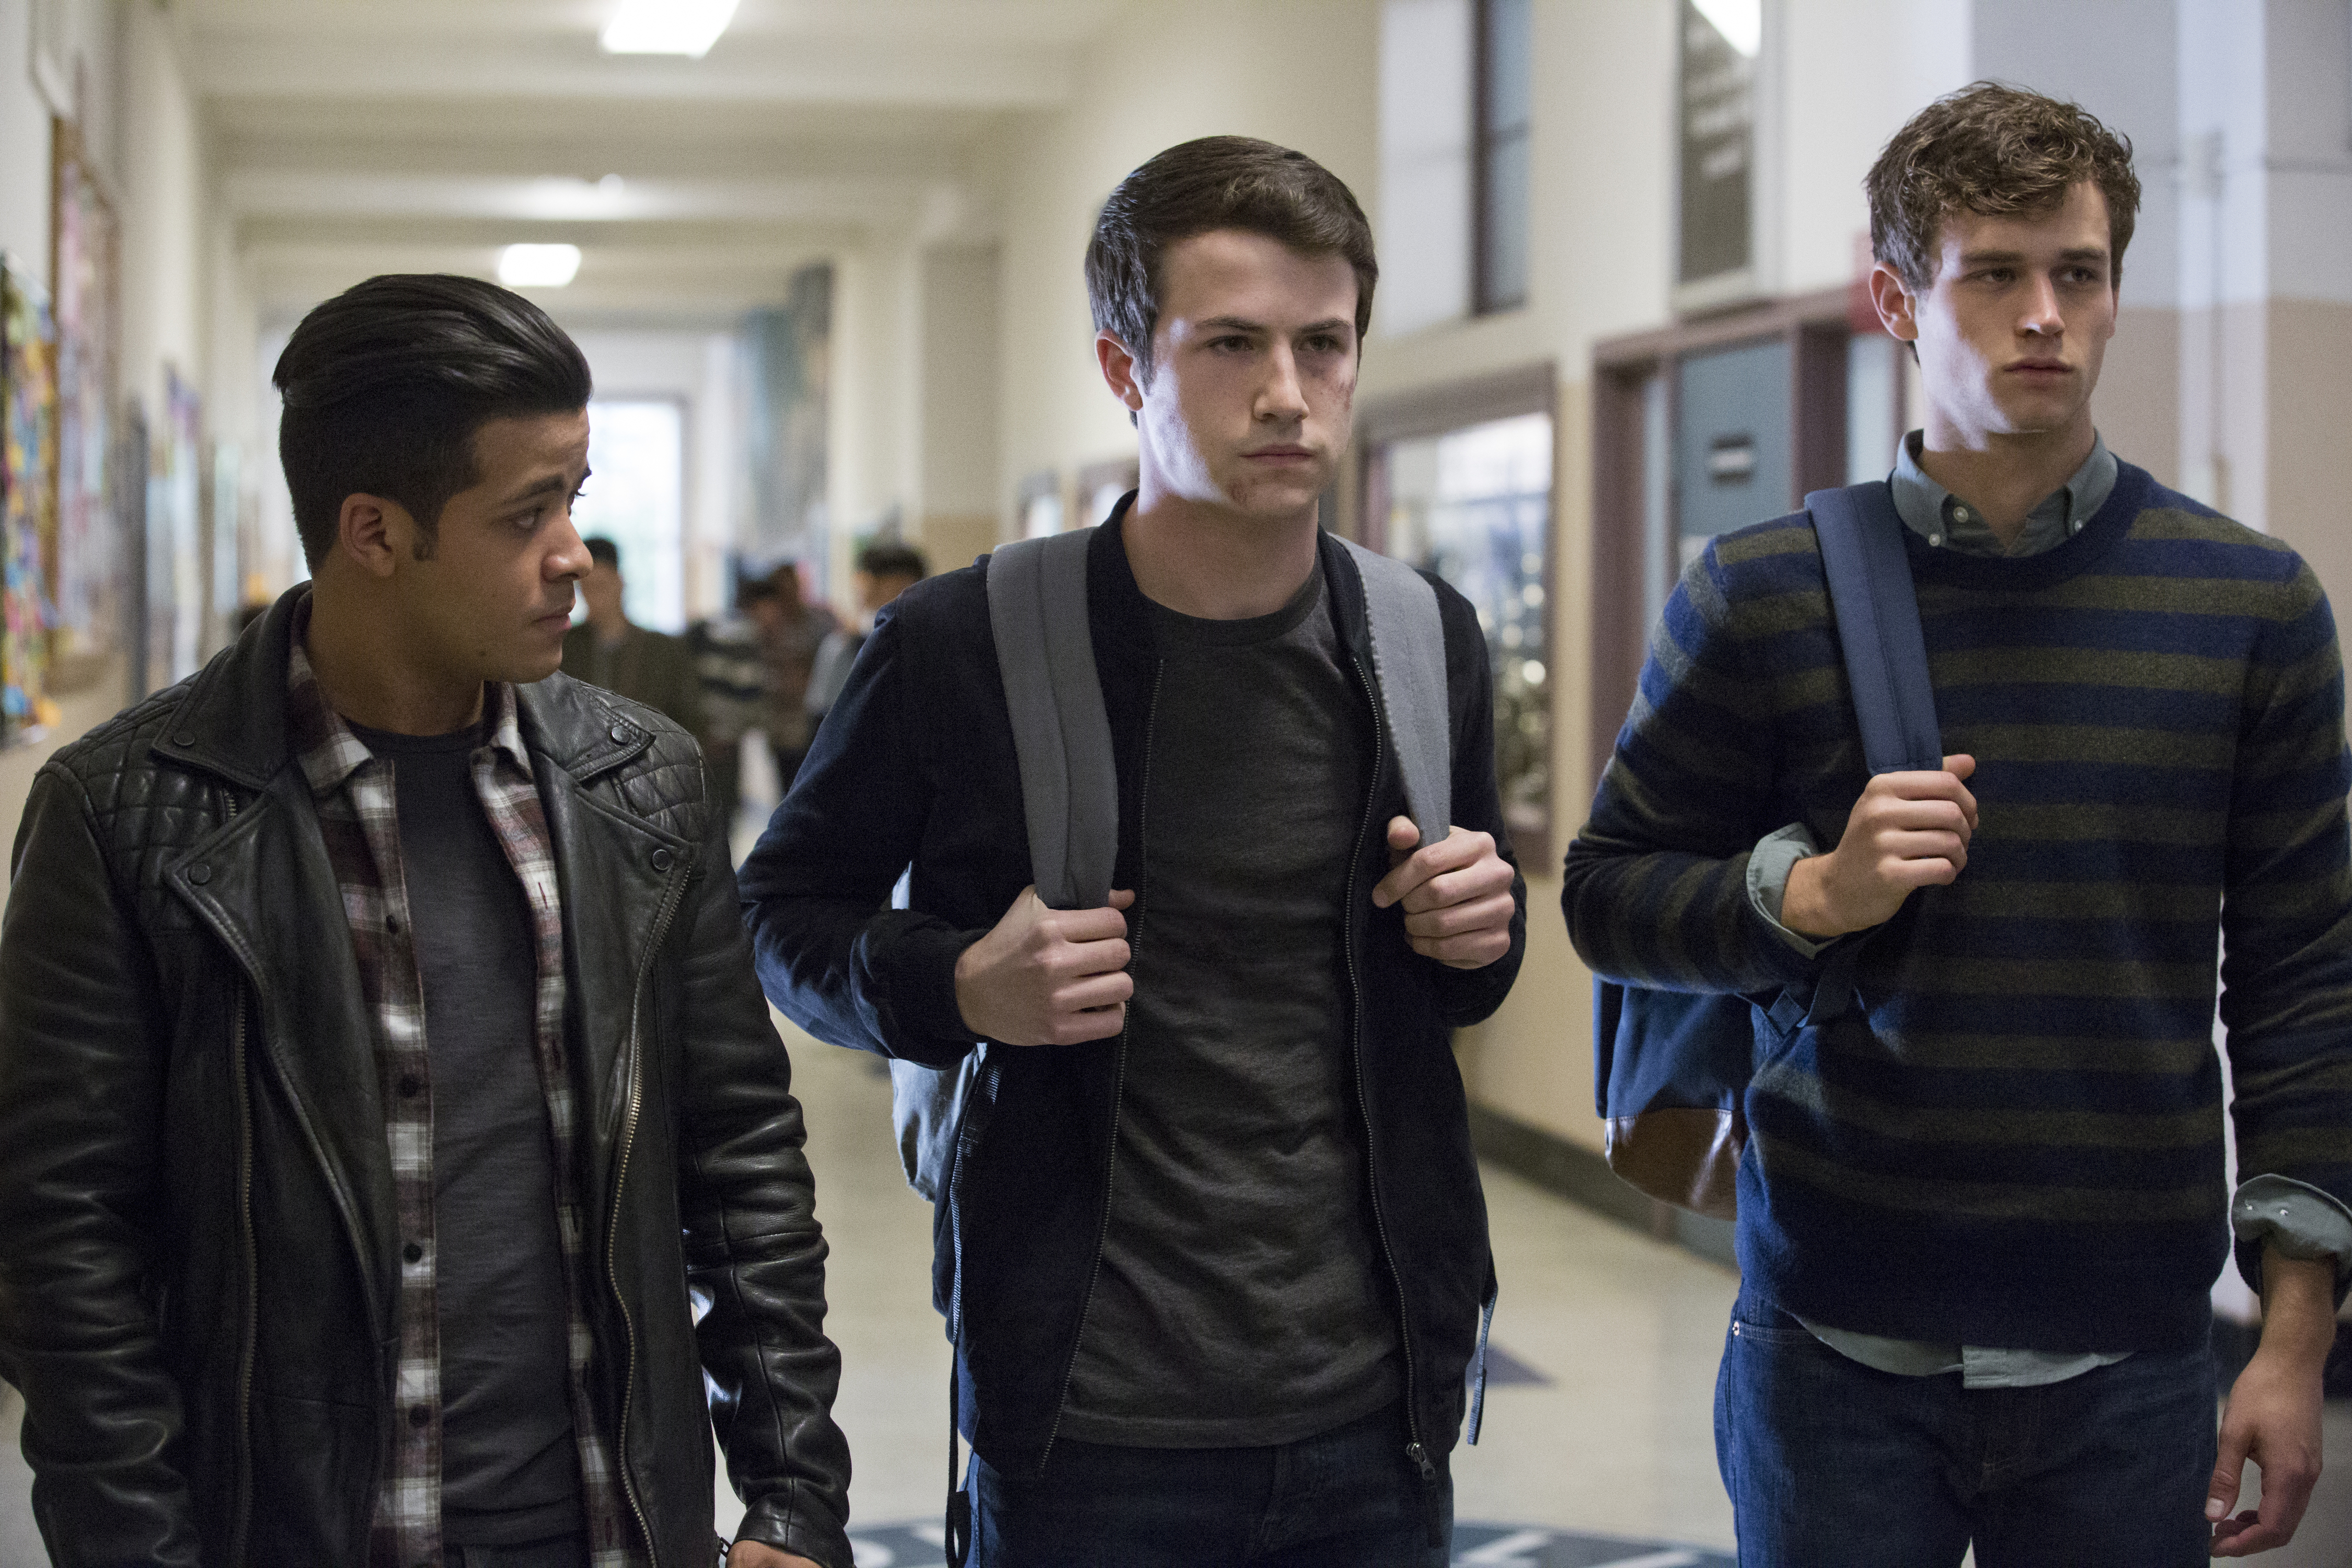 Pierce: Should kids watch '13 Reasons Why'? Parents, it's your job to decide